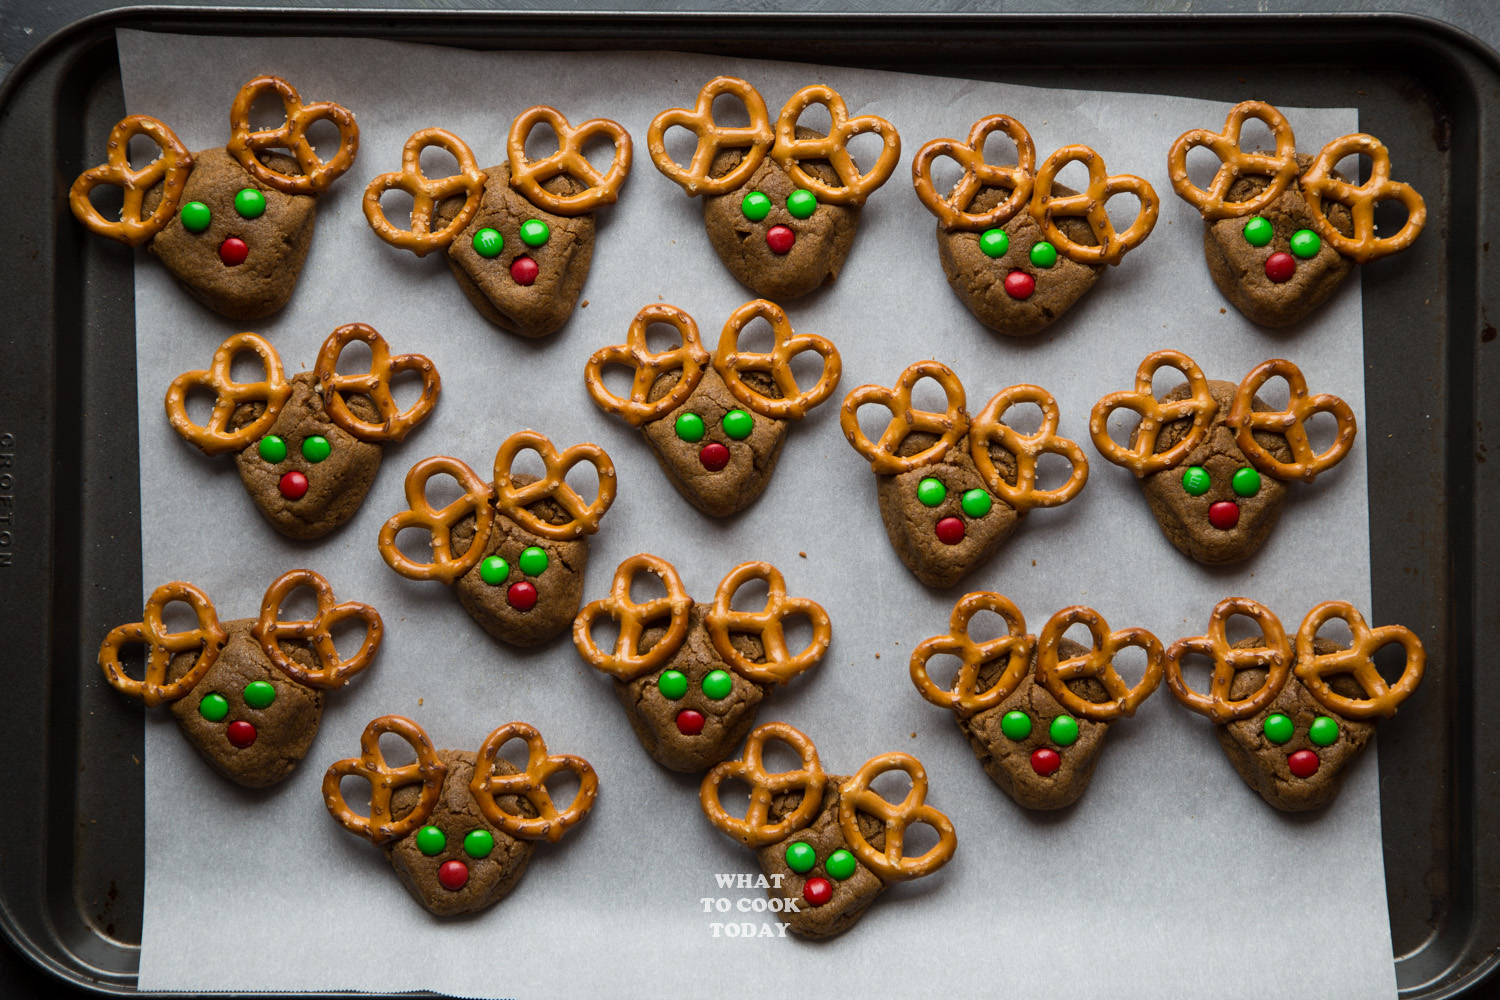 Coconut Oil Gingerbread Red Nosed Reindeer #gingerbread #christmas #cookies #reindeer #cutefood